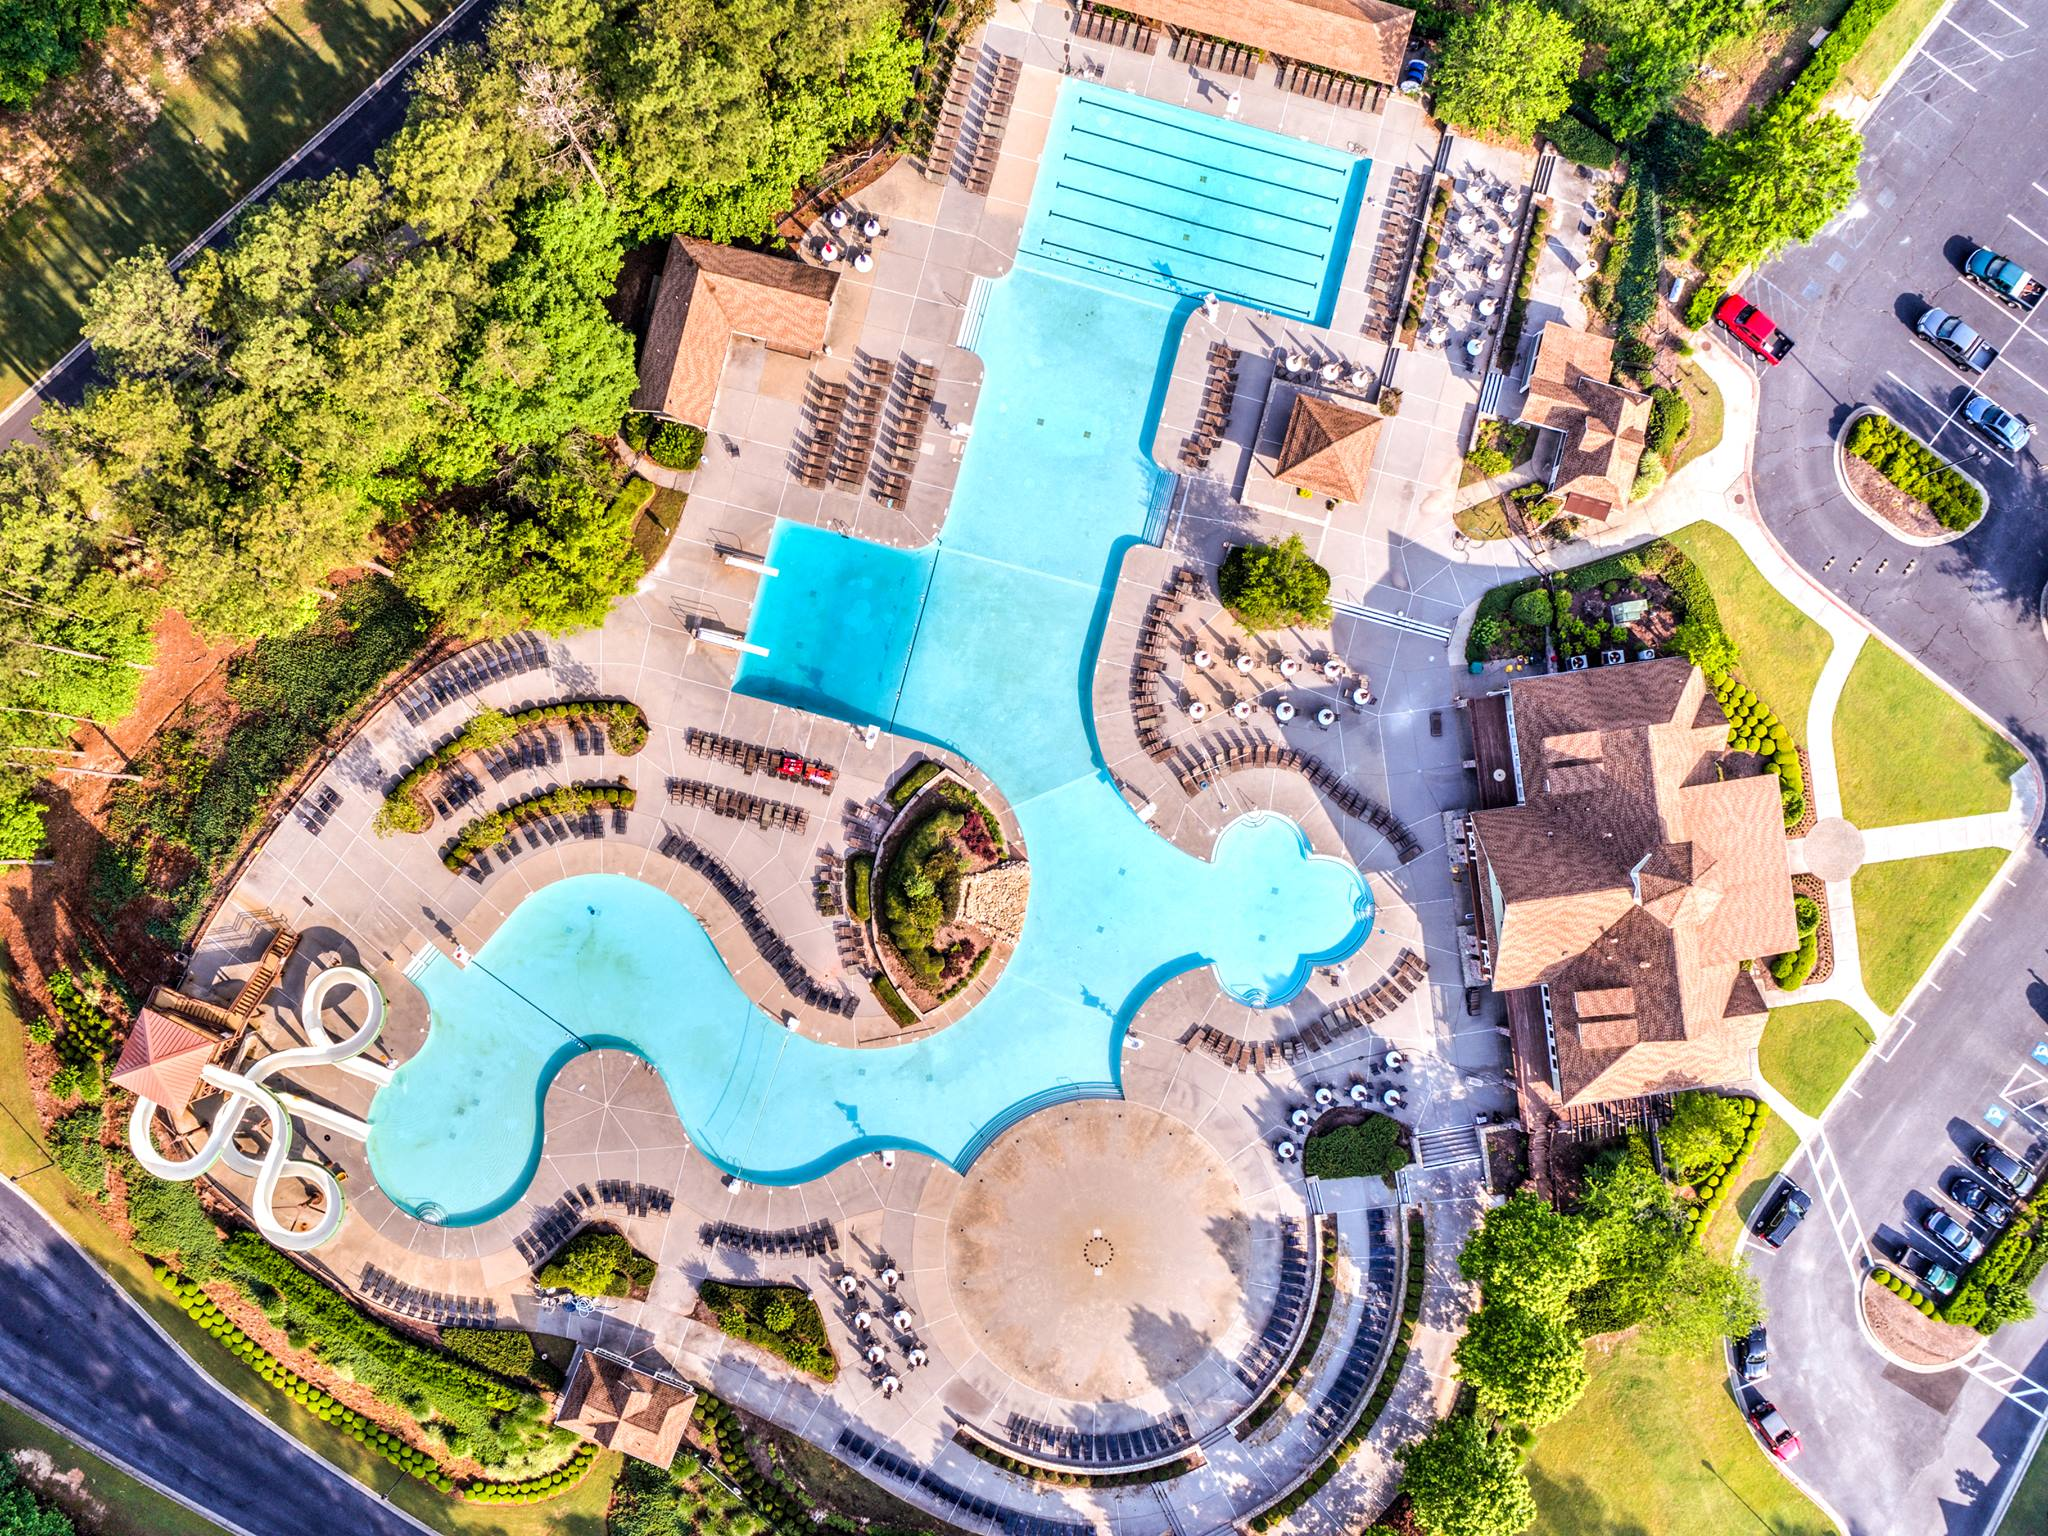 Aerial photograph of amenities in Canton, Georgia taken by Cherokee Drone Services of